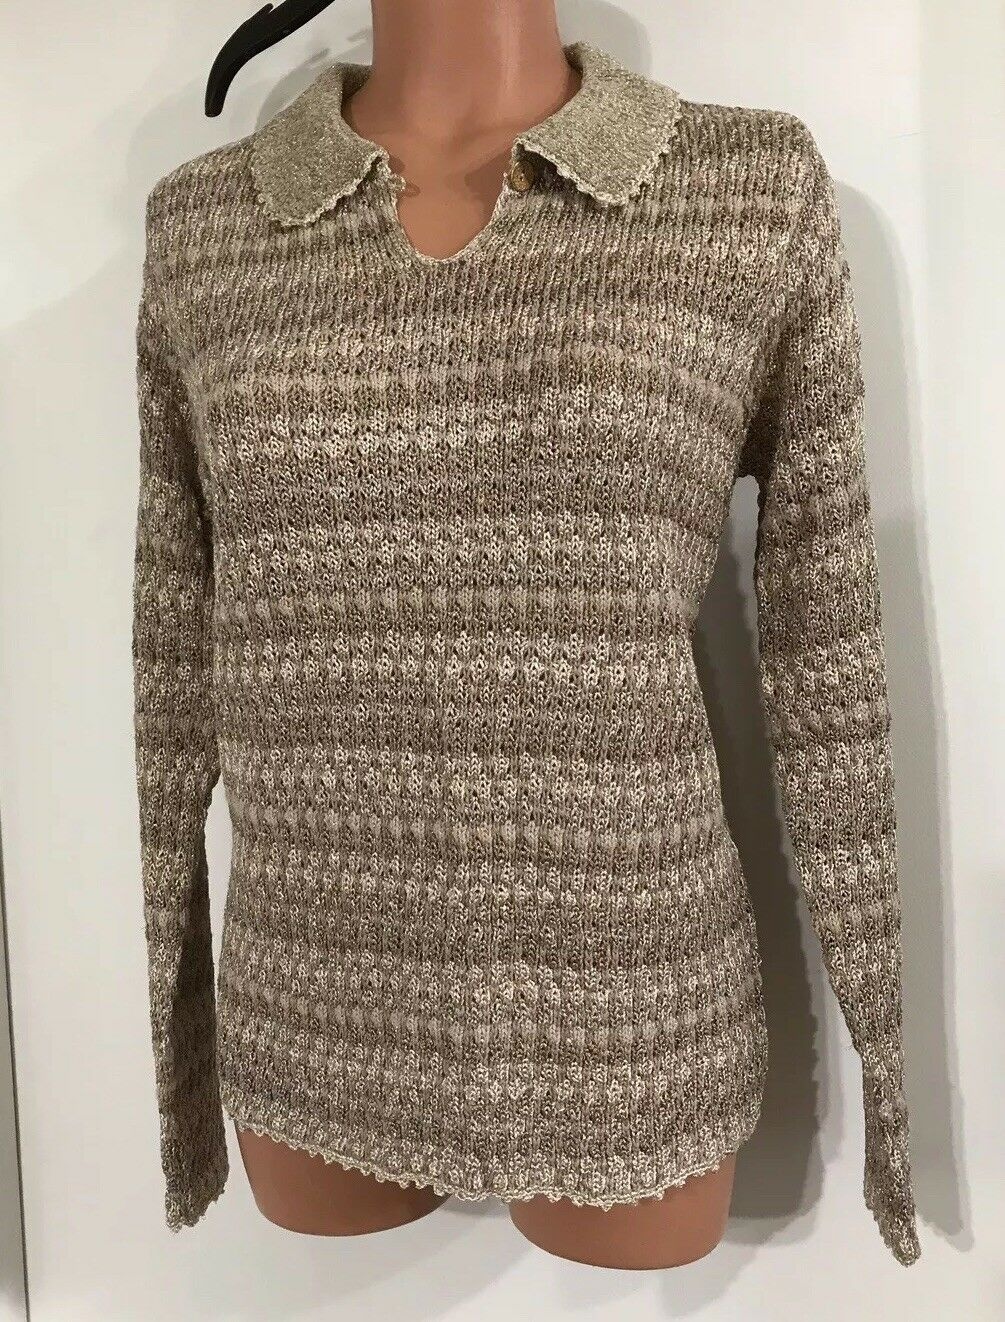 NEW Marisa Studio Sweater gold And Tans Women's Size Med. MSRP  138